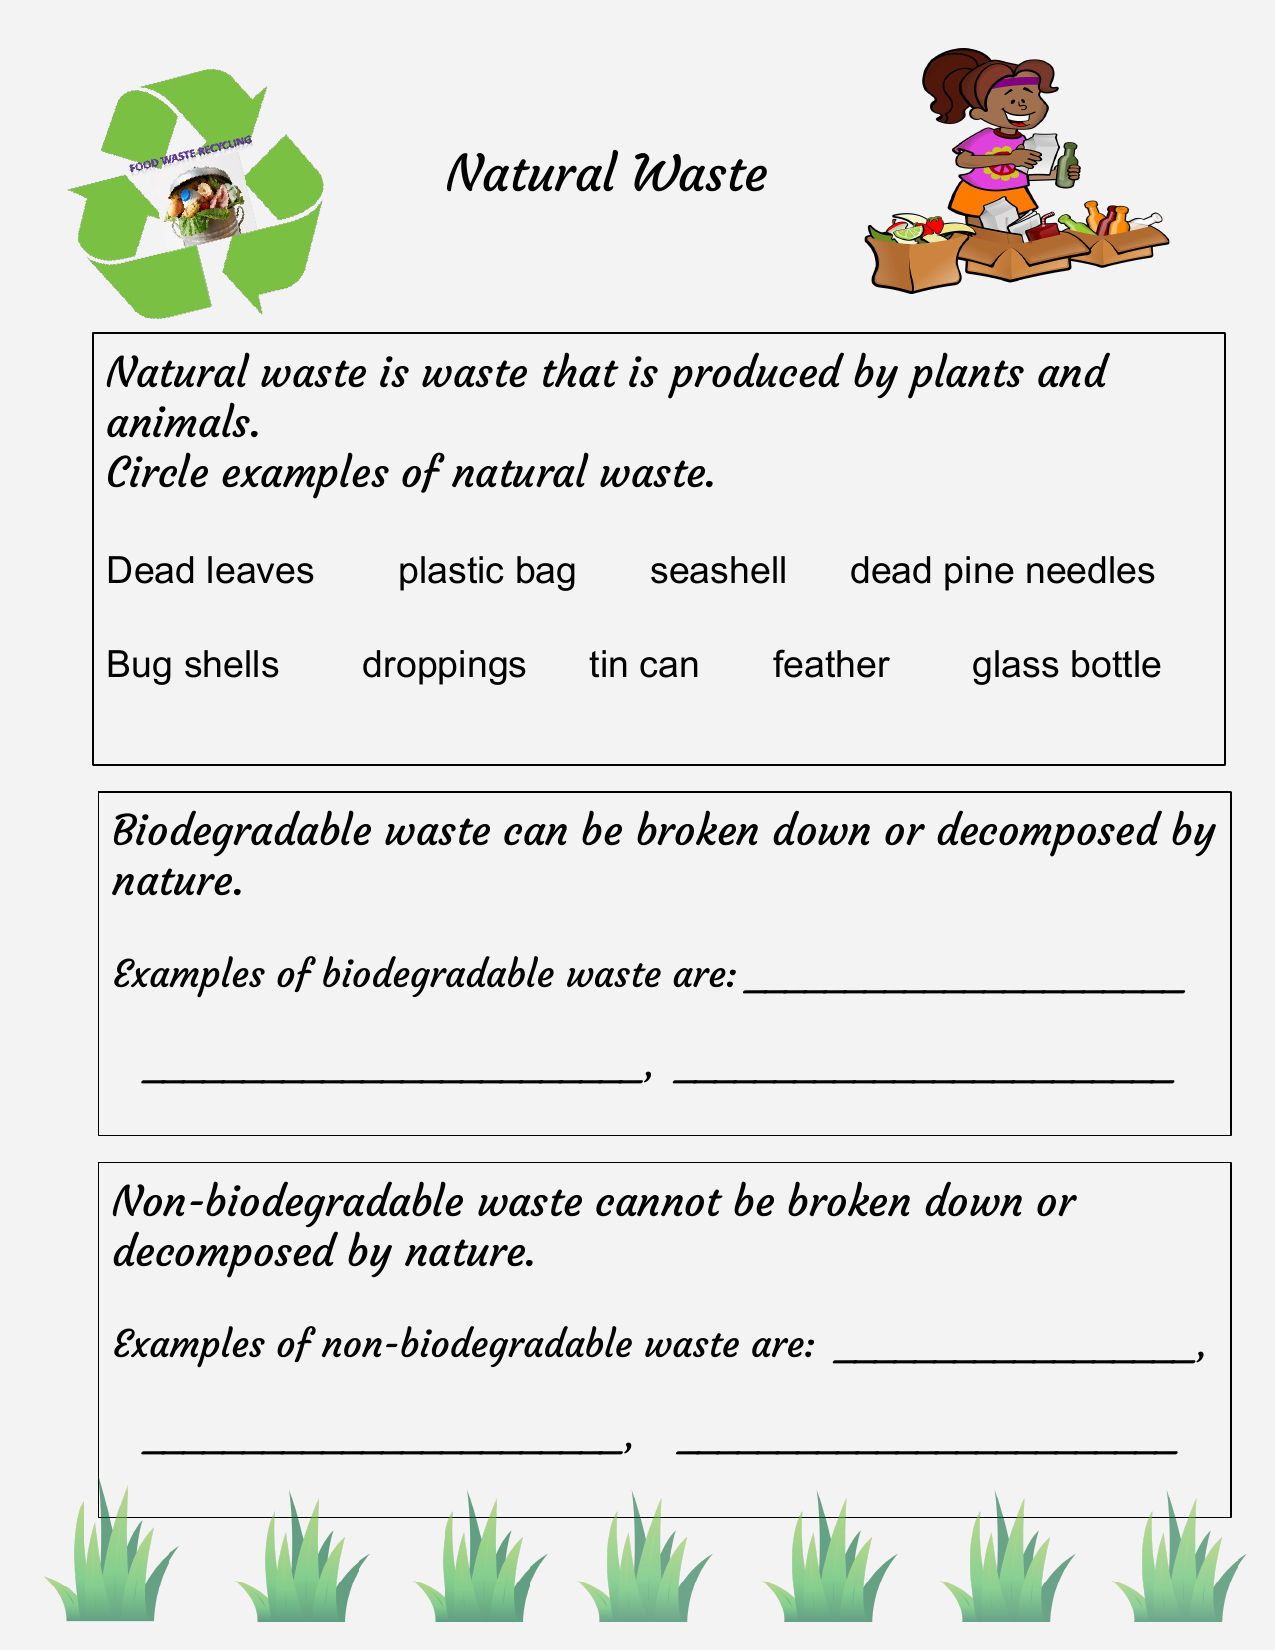 natural waste worksheet resource preview biology class teaching resources teaching science. Black Bedroom Furniture Sets. Home Design Ideas